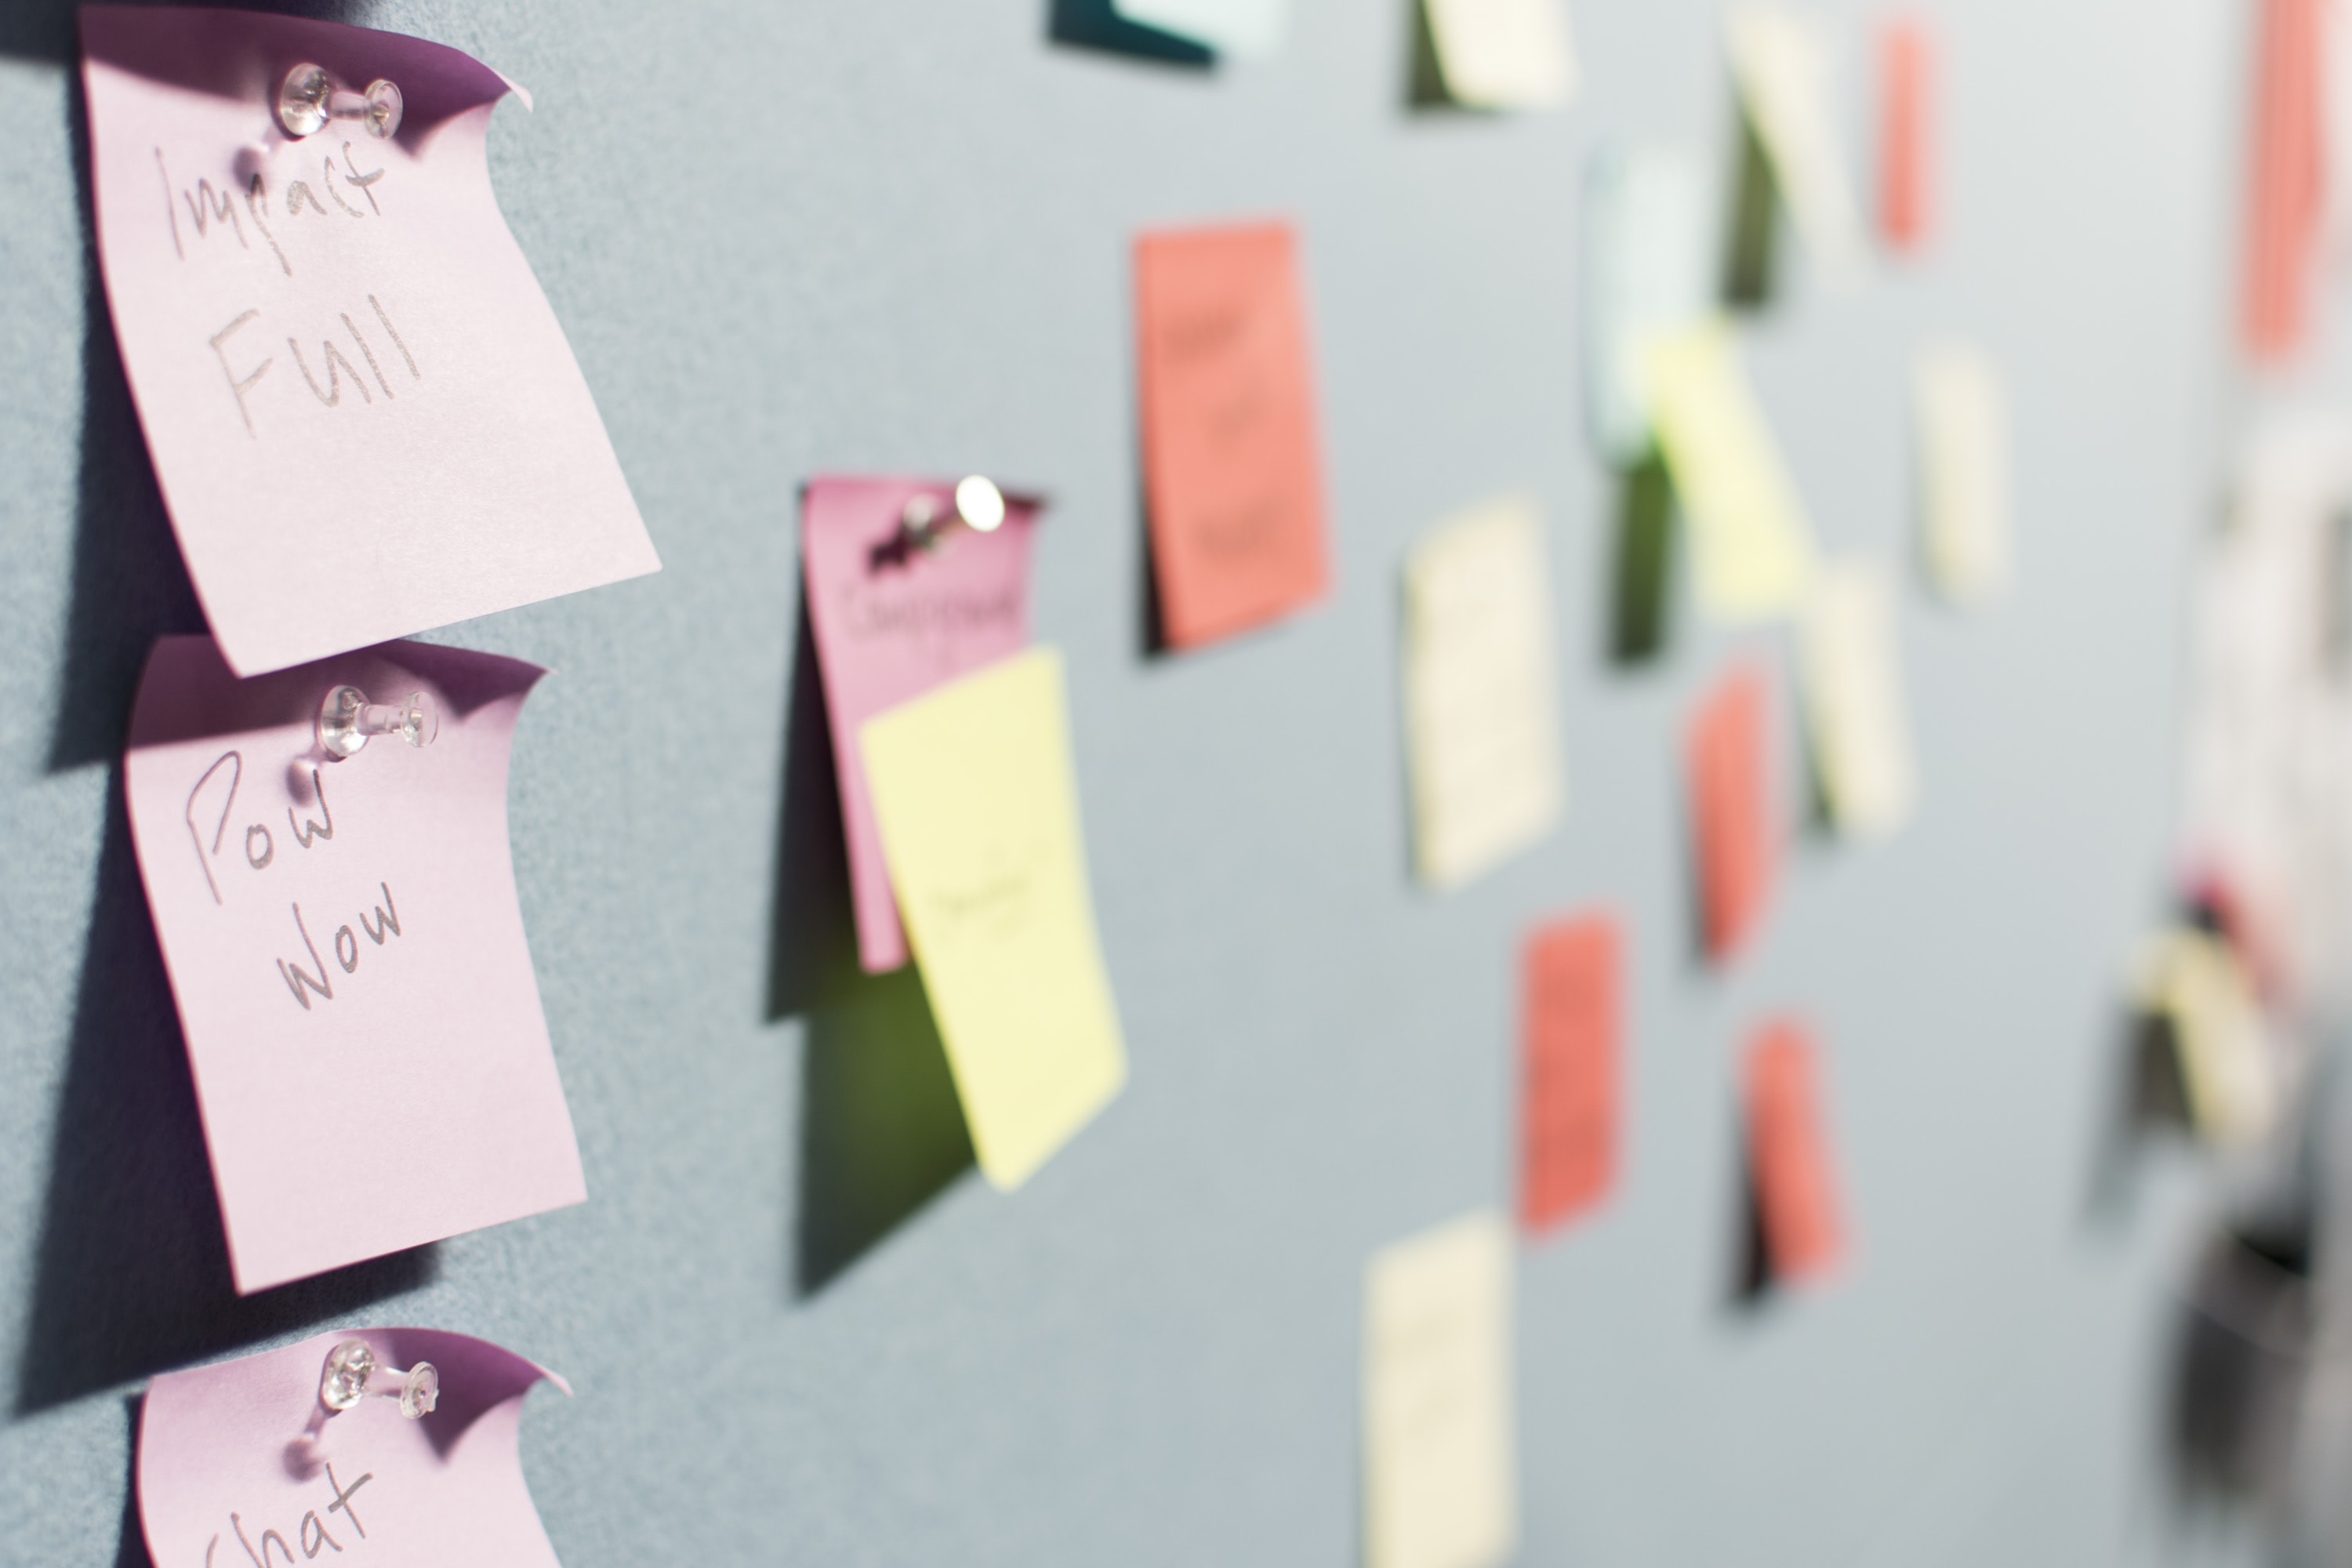 Colorful sticky notes on a gray wall